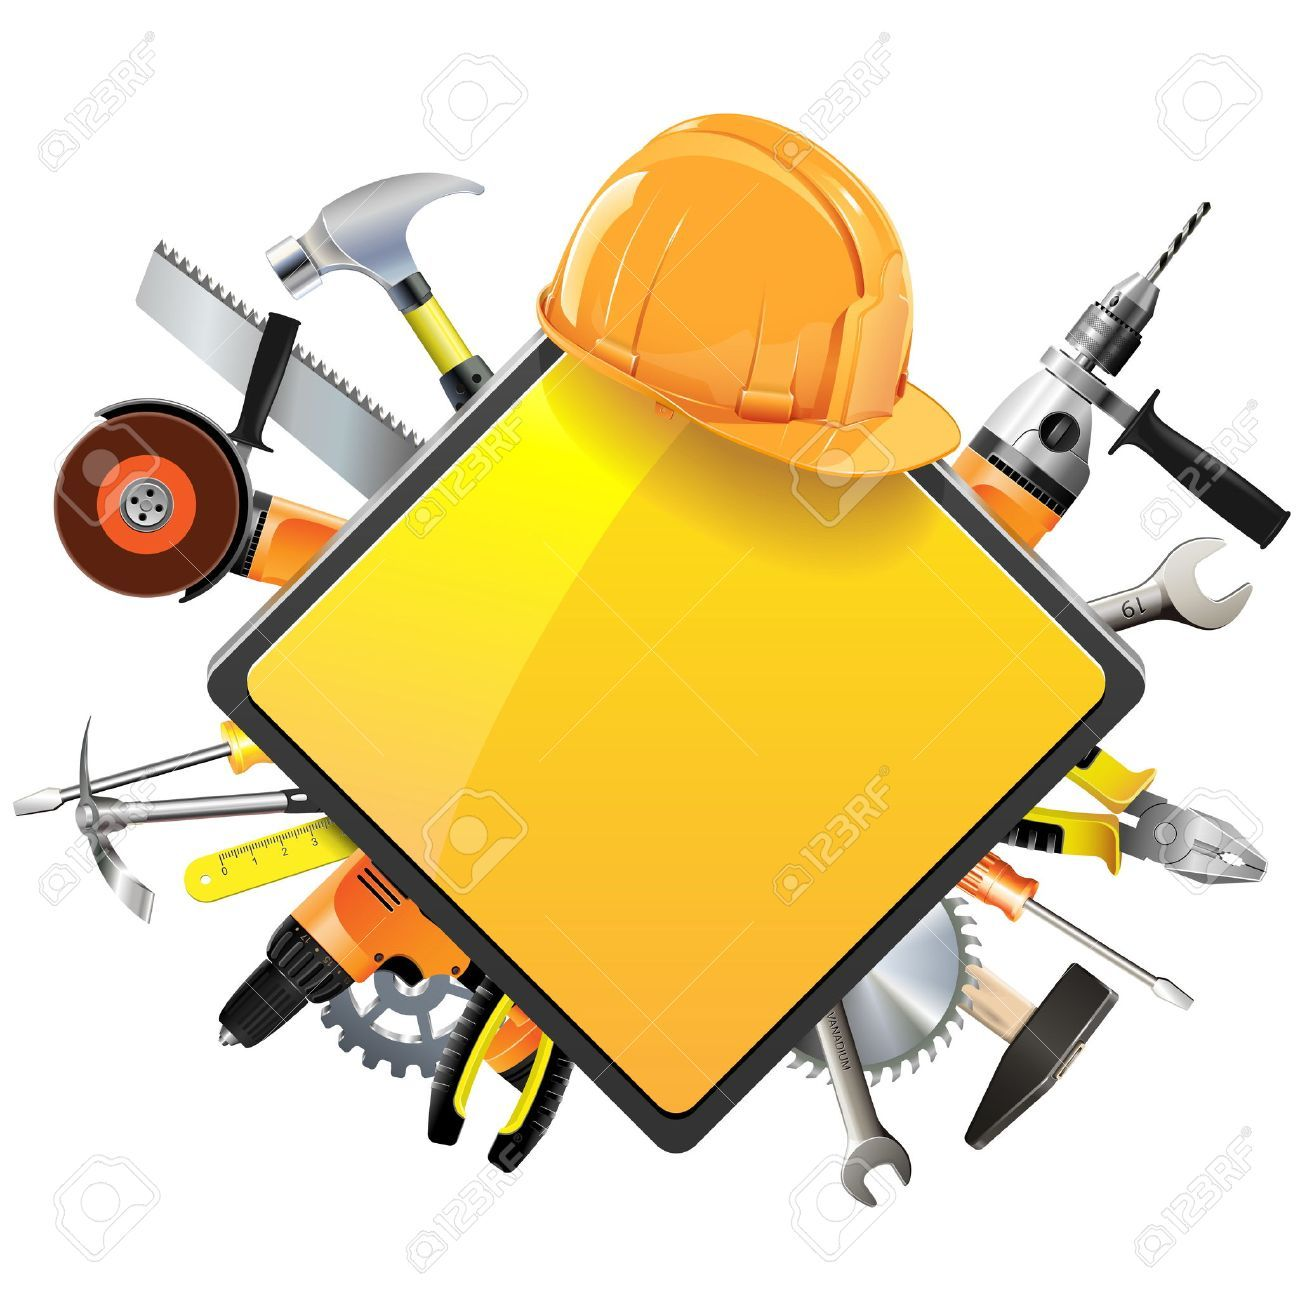 Construction worker tools clipart 2 » Clipart Portal.